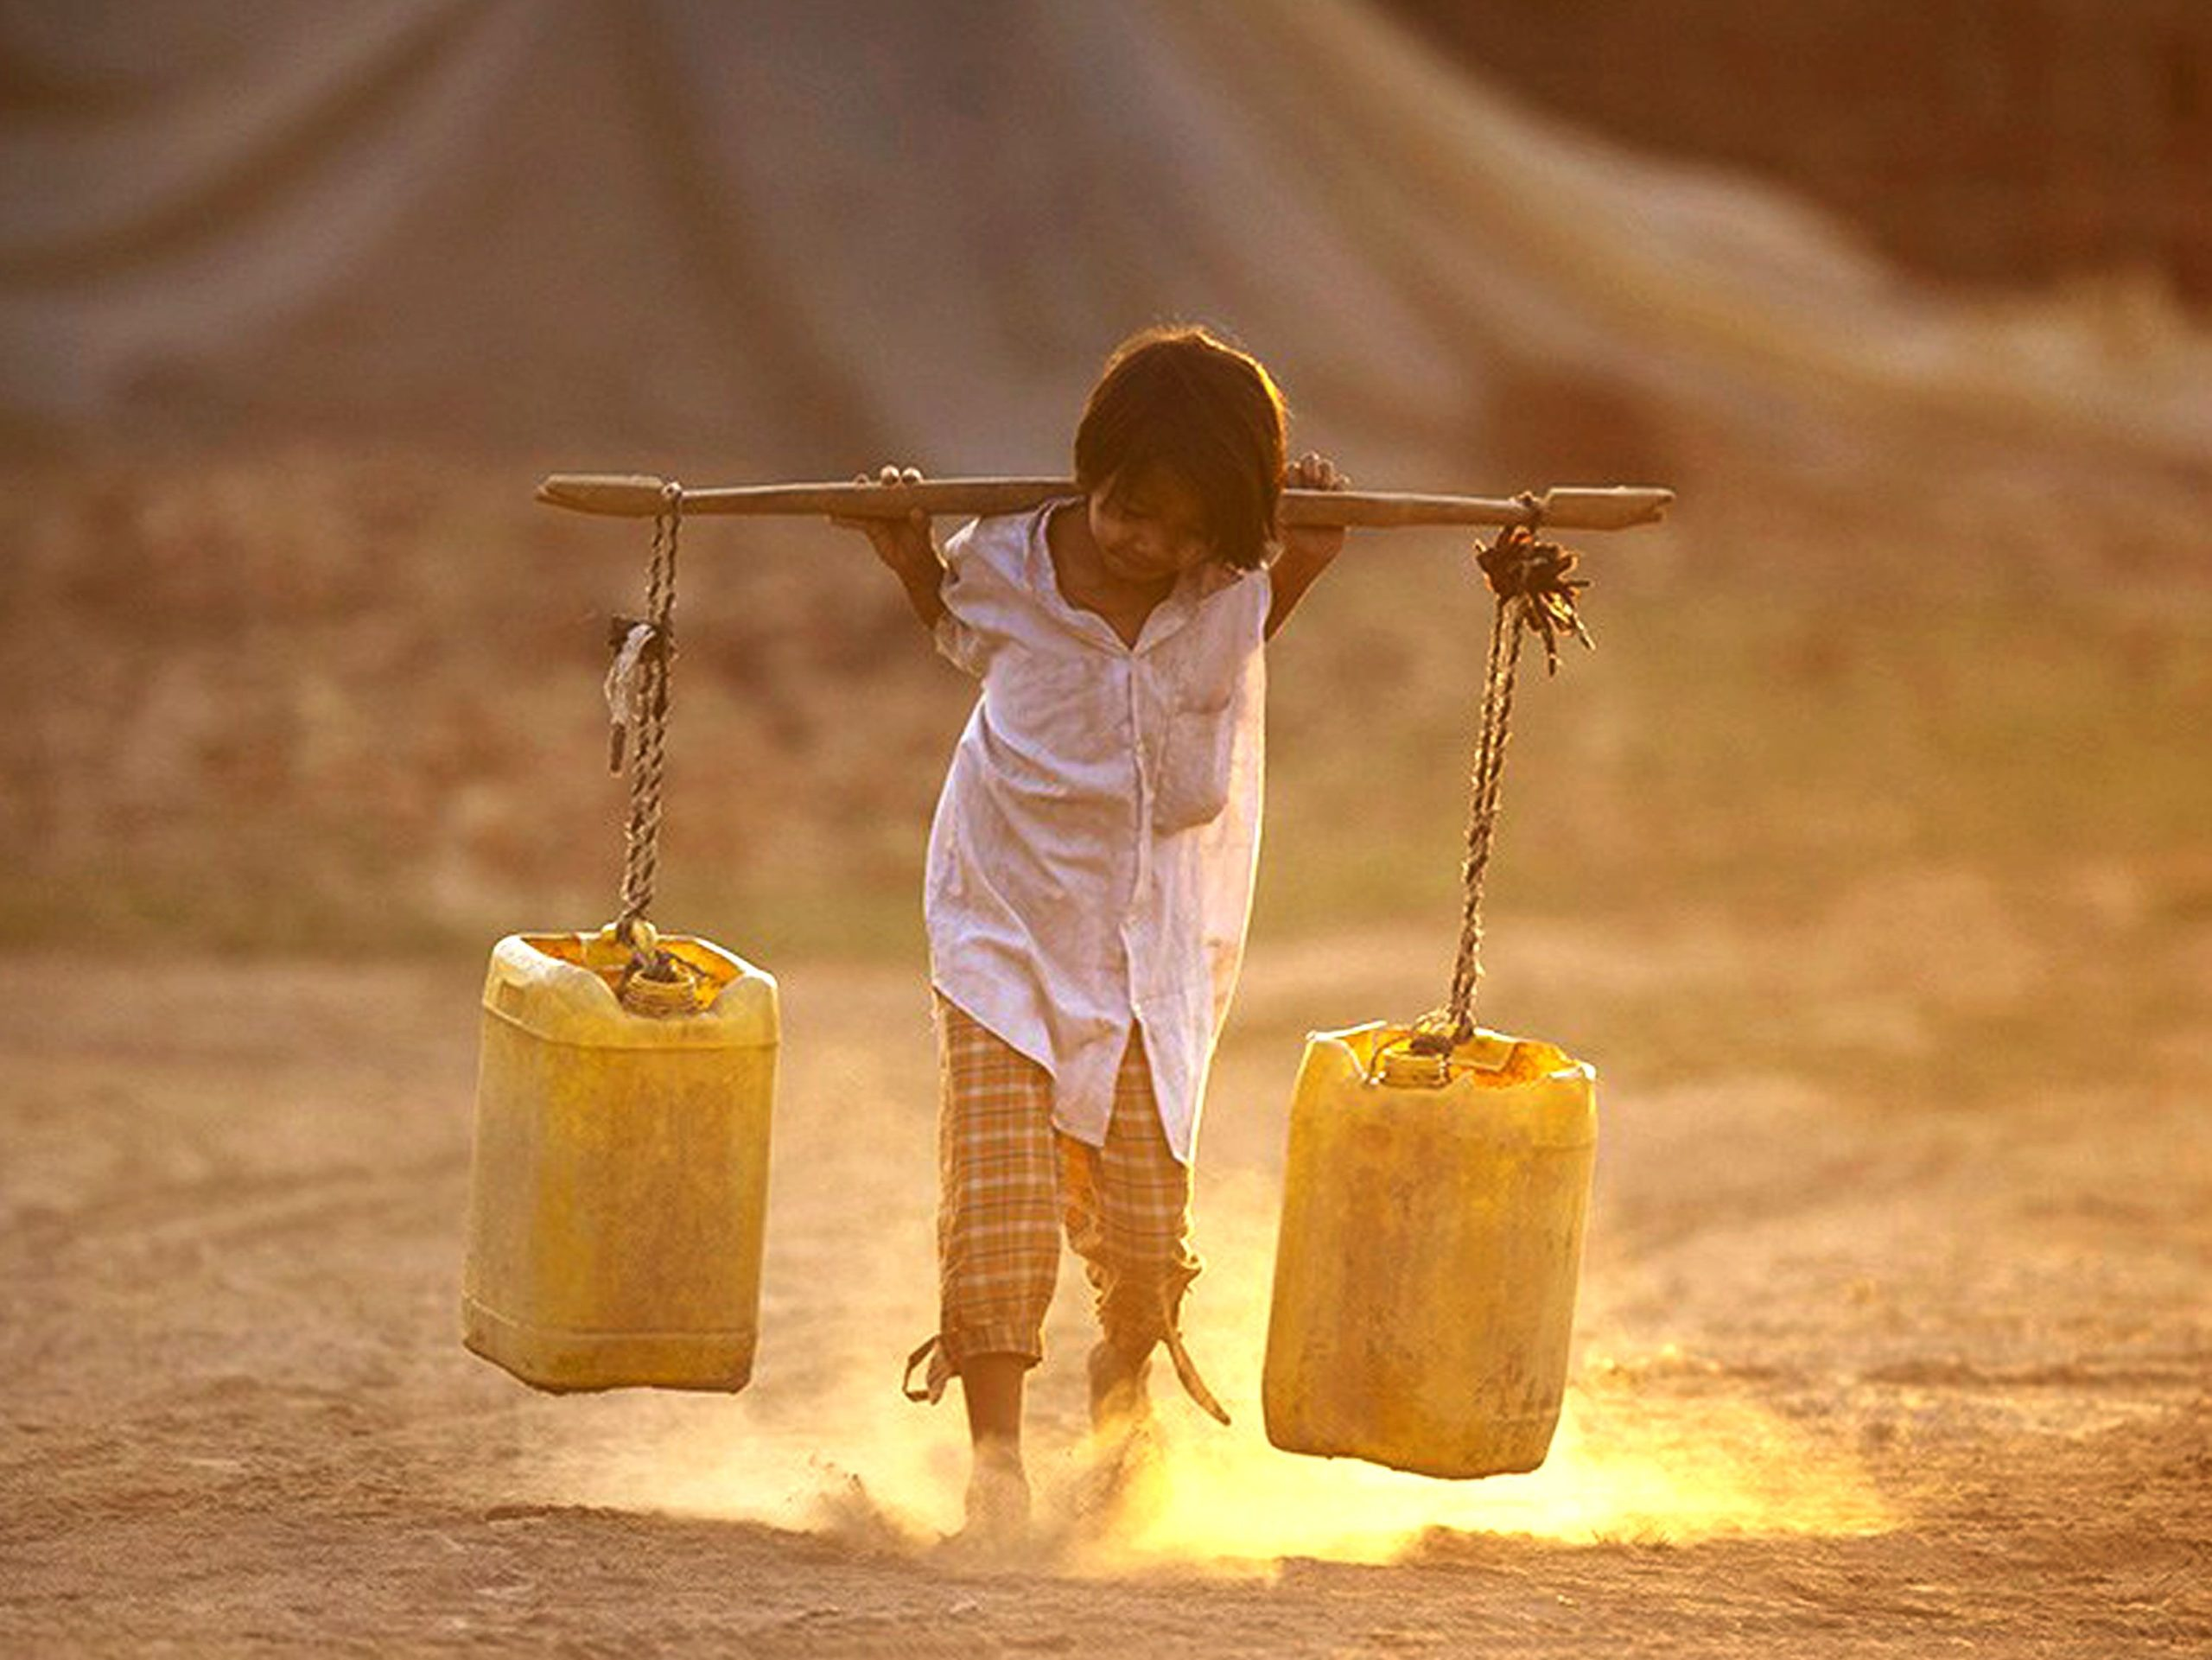 World Water Crises